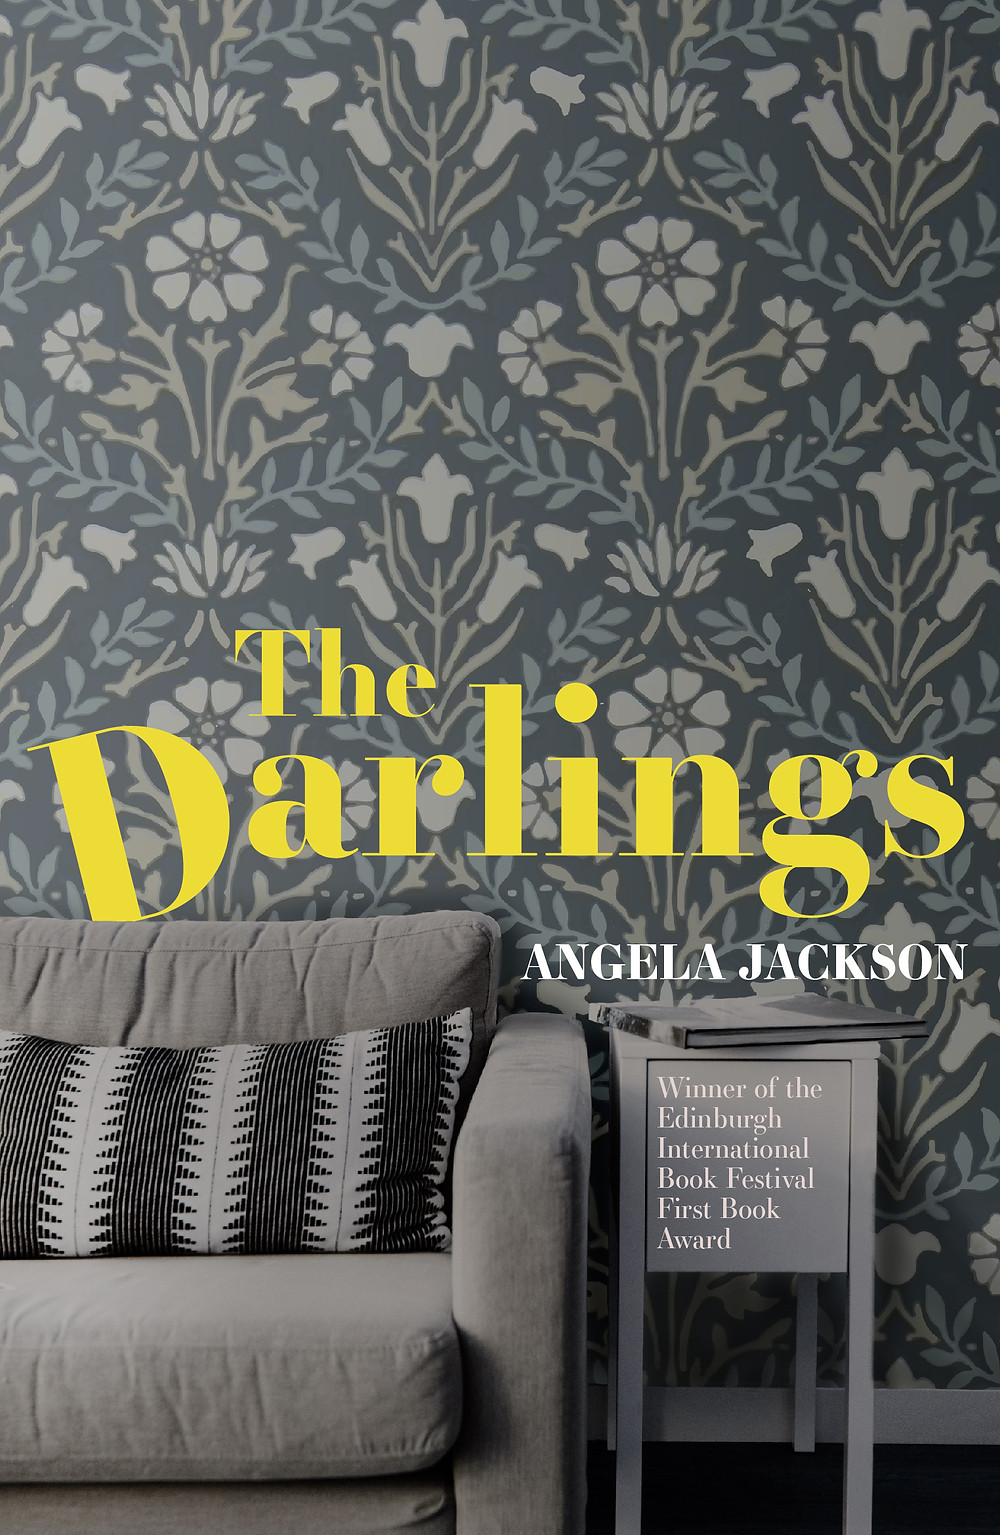 Book cover of The Darlings by Angela Jackson